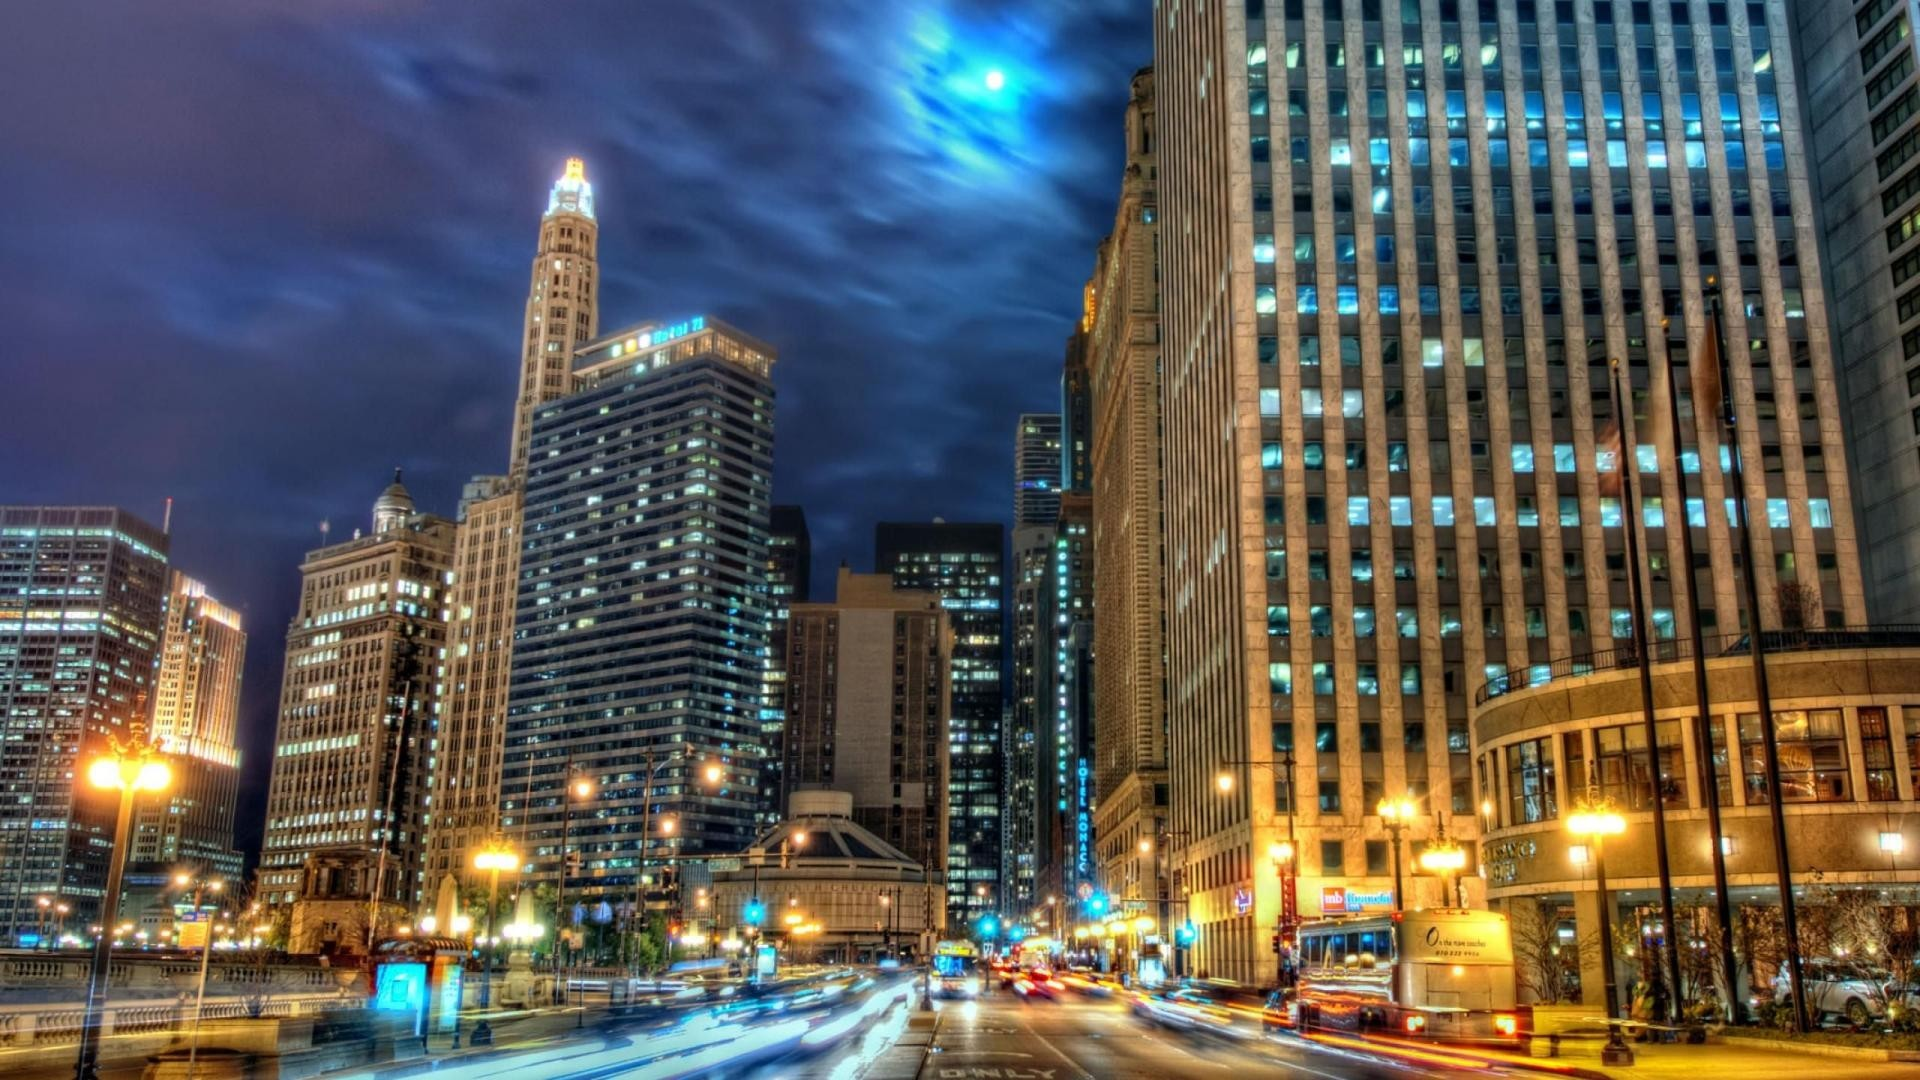 Good Wallpaper Night Chicago - beautiful-chicago-at-night-hdr-1920x1080-wallpaper  Graphic.jpg